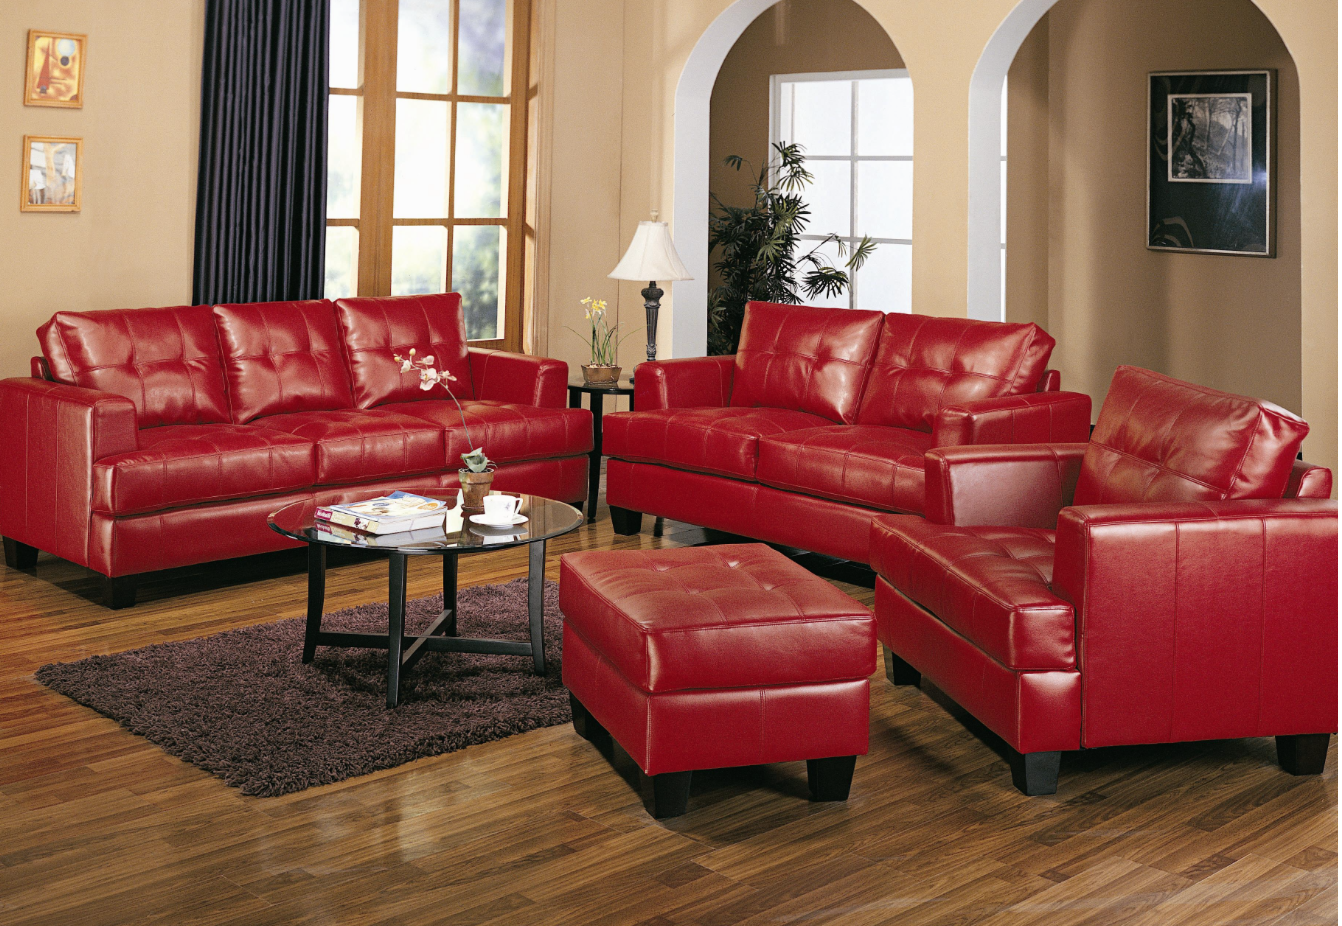 fletcher best sectionals its red couch simple inside and furniture of smart leather sectional with clean tailoring couches newest ottoman lines top